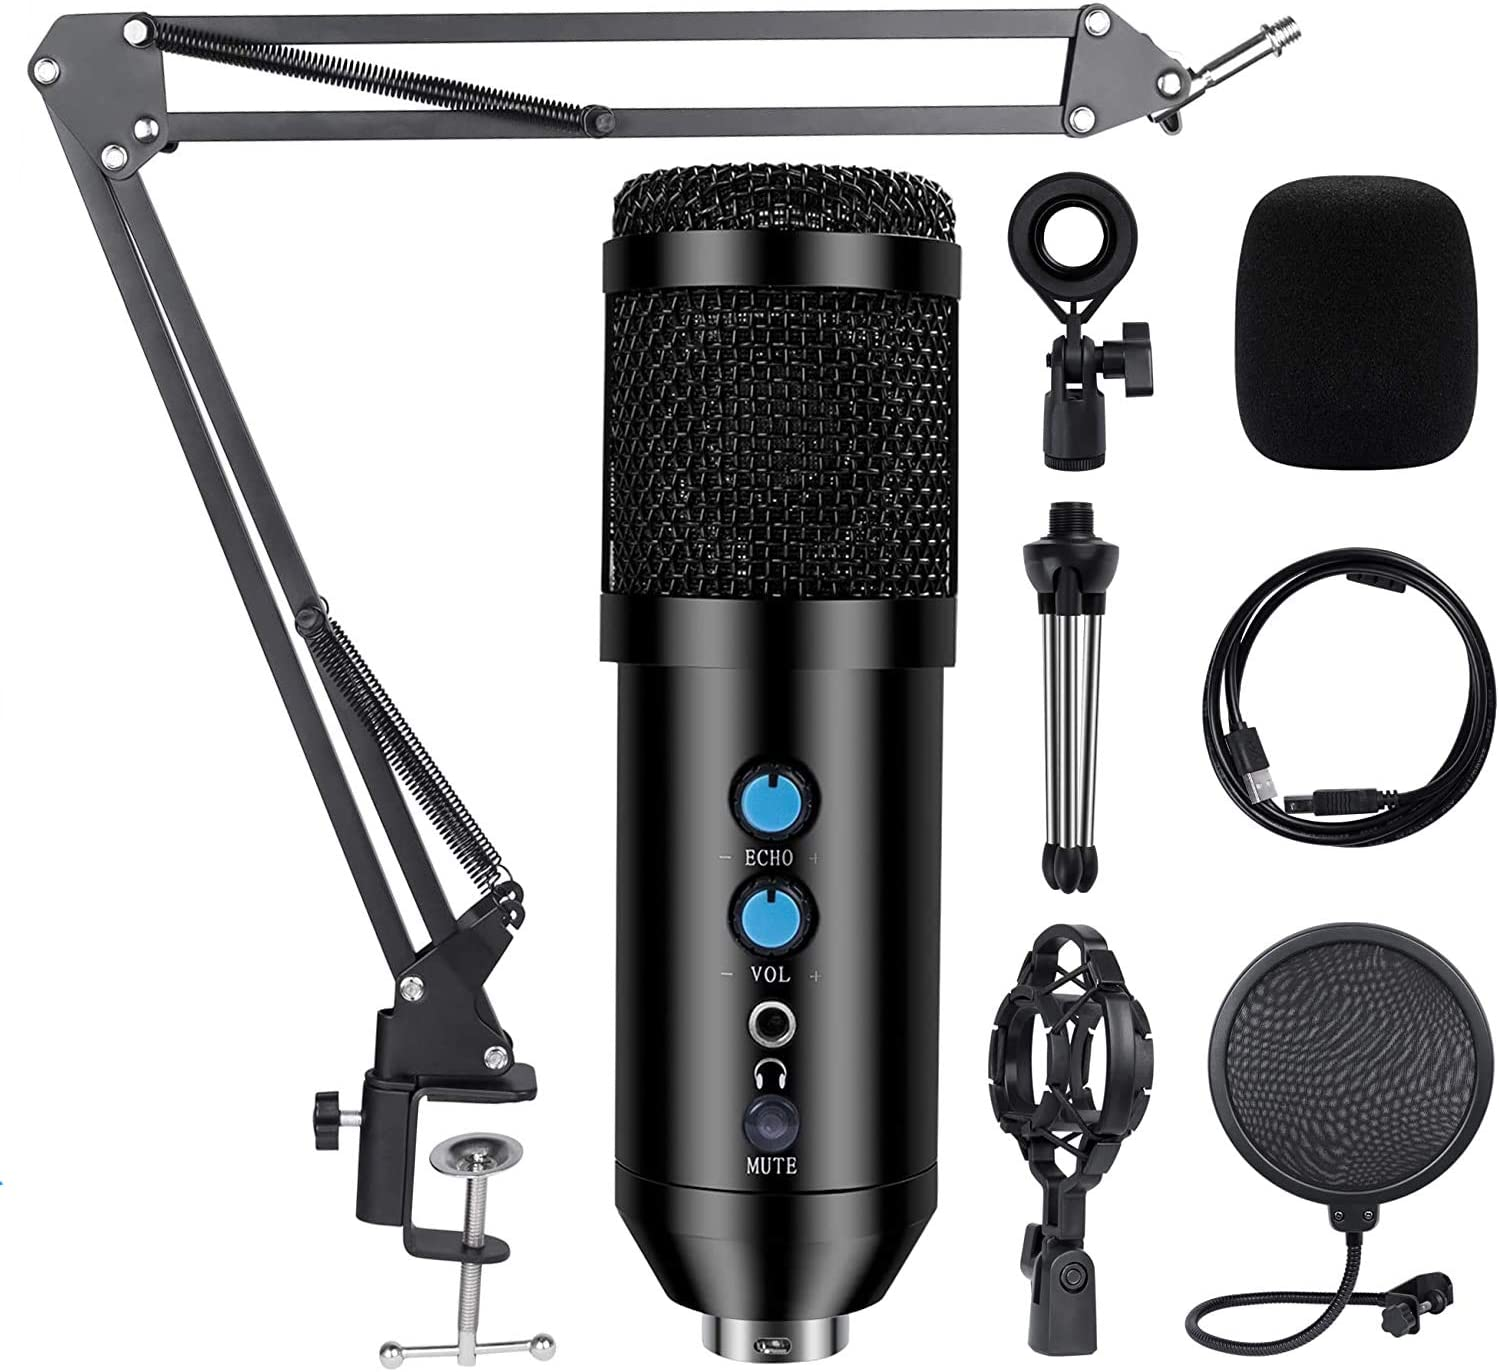 Kalawen USB Condenser Microphone Some reservation for Computer Professional Charlotte Mall K PC